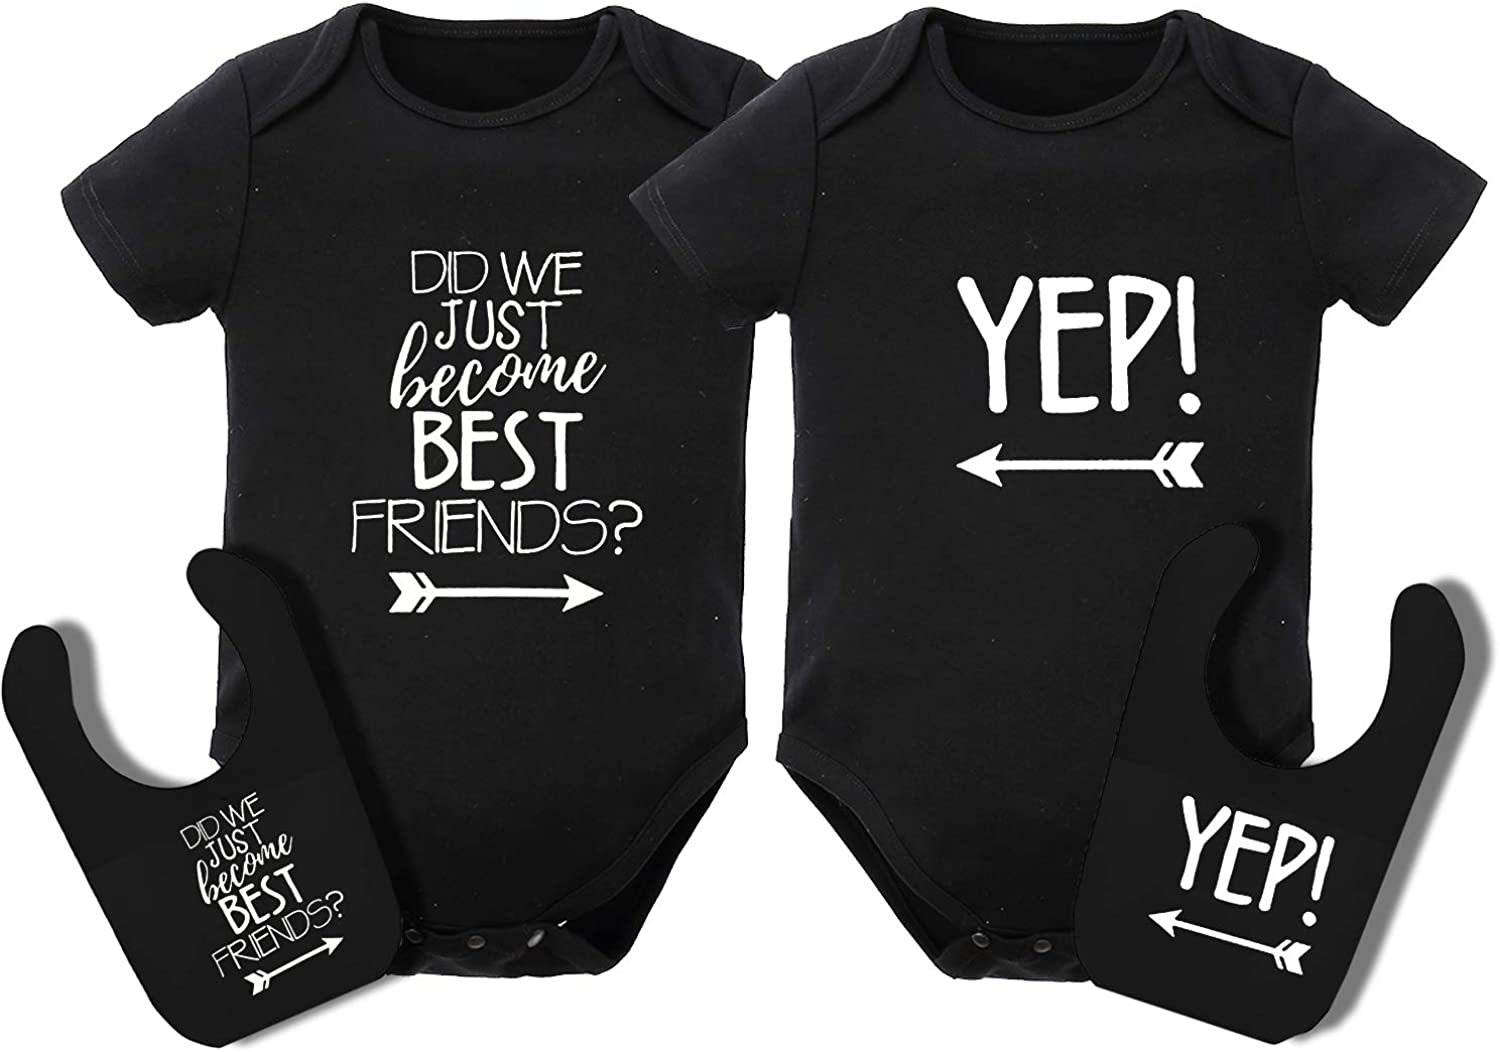 Did we just become best Friends ideal Gift T-shirts Vest,Bibs SET OF 2 items